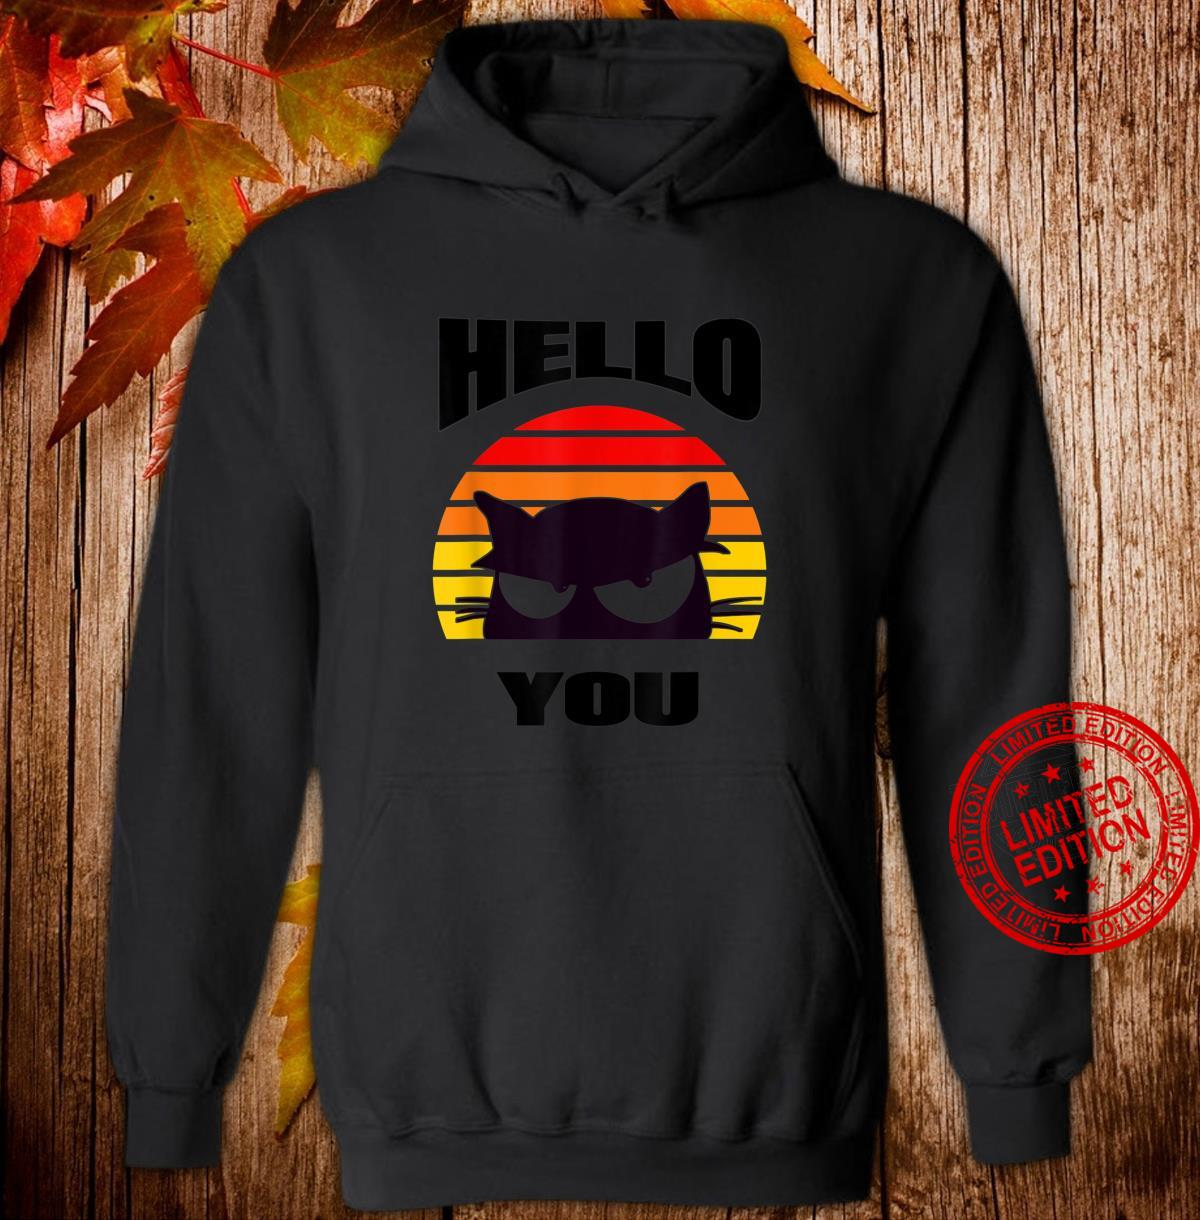 Hello You. Cute black cat design peeping out at you. Shirt hoodie